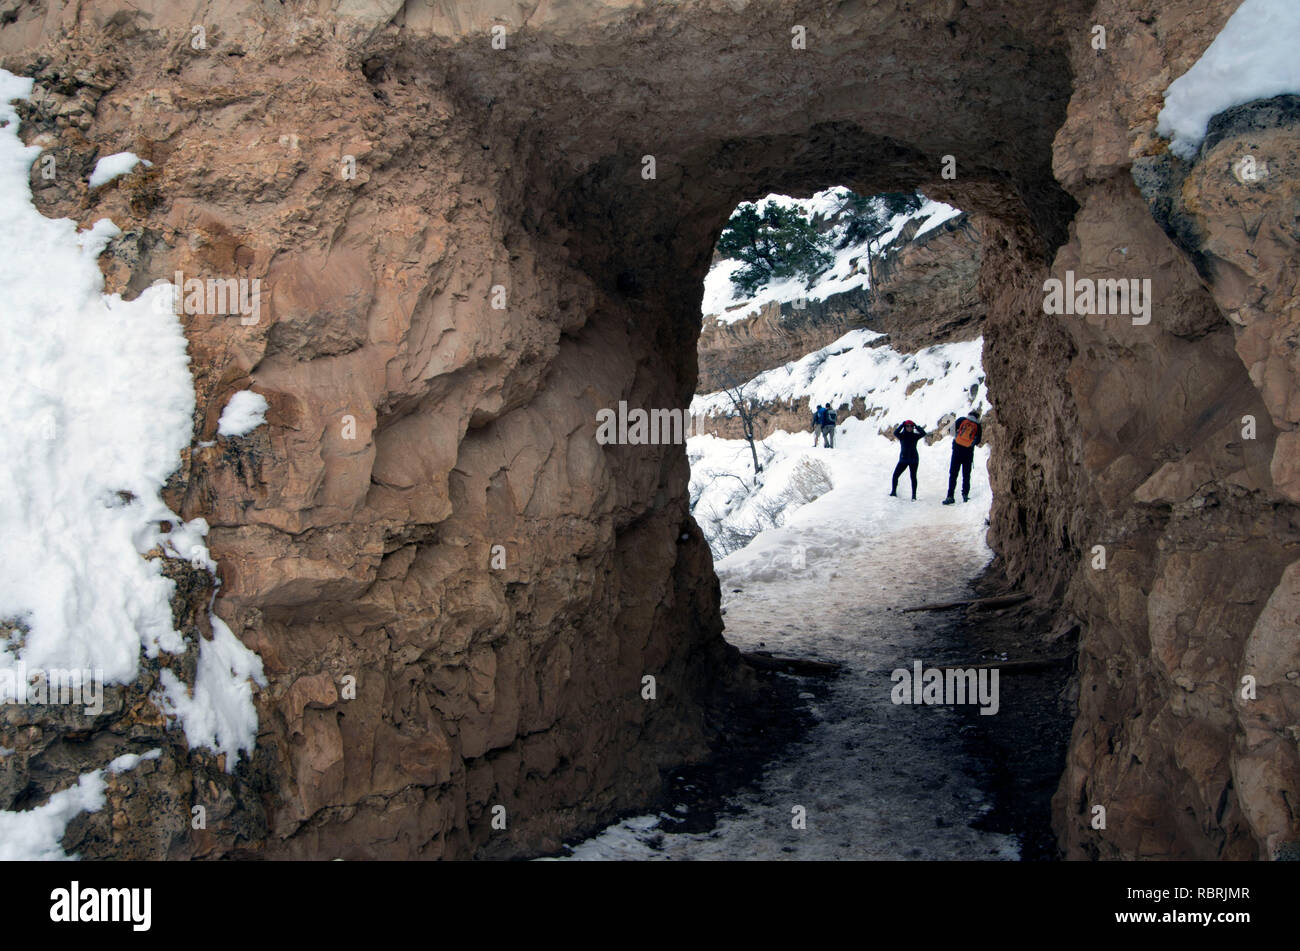 The Bright Angel Trailhead in the Grand Canyon is one of the park's most popular trails. This tunnel is within the first five minutes of the hike. - Stock Image